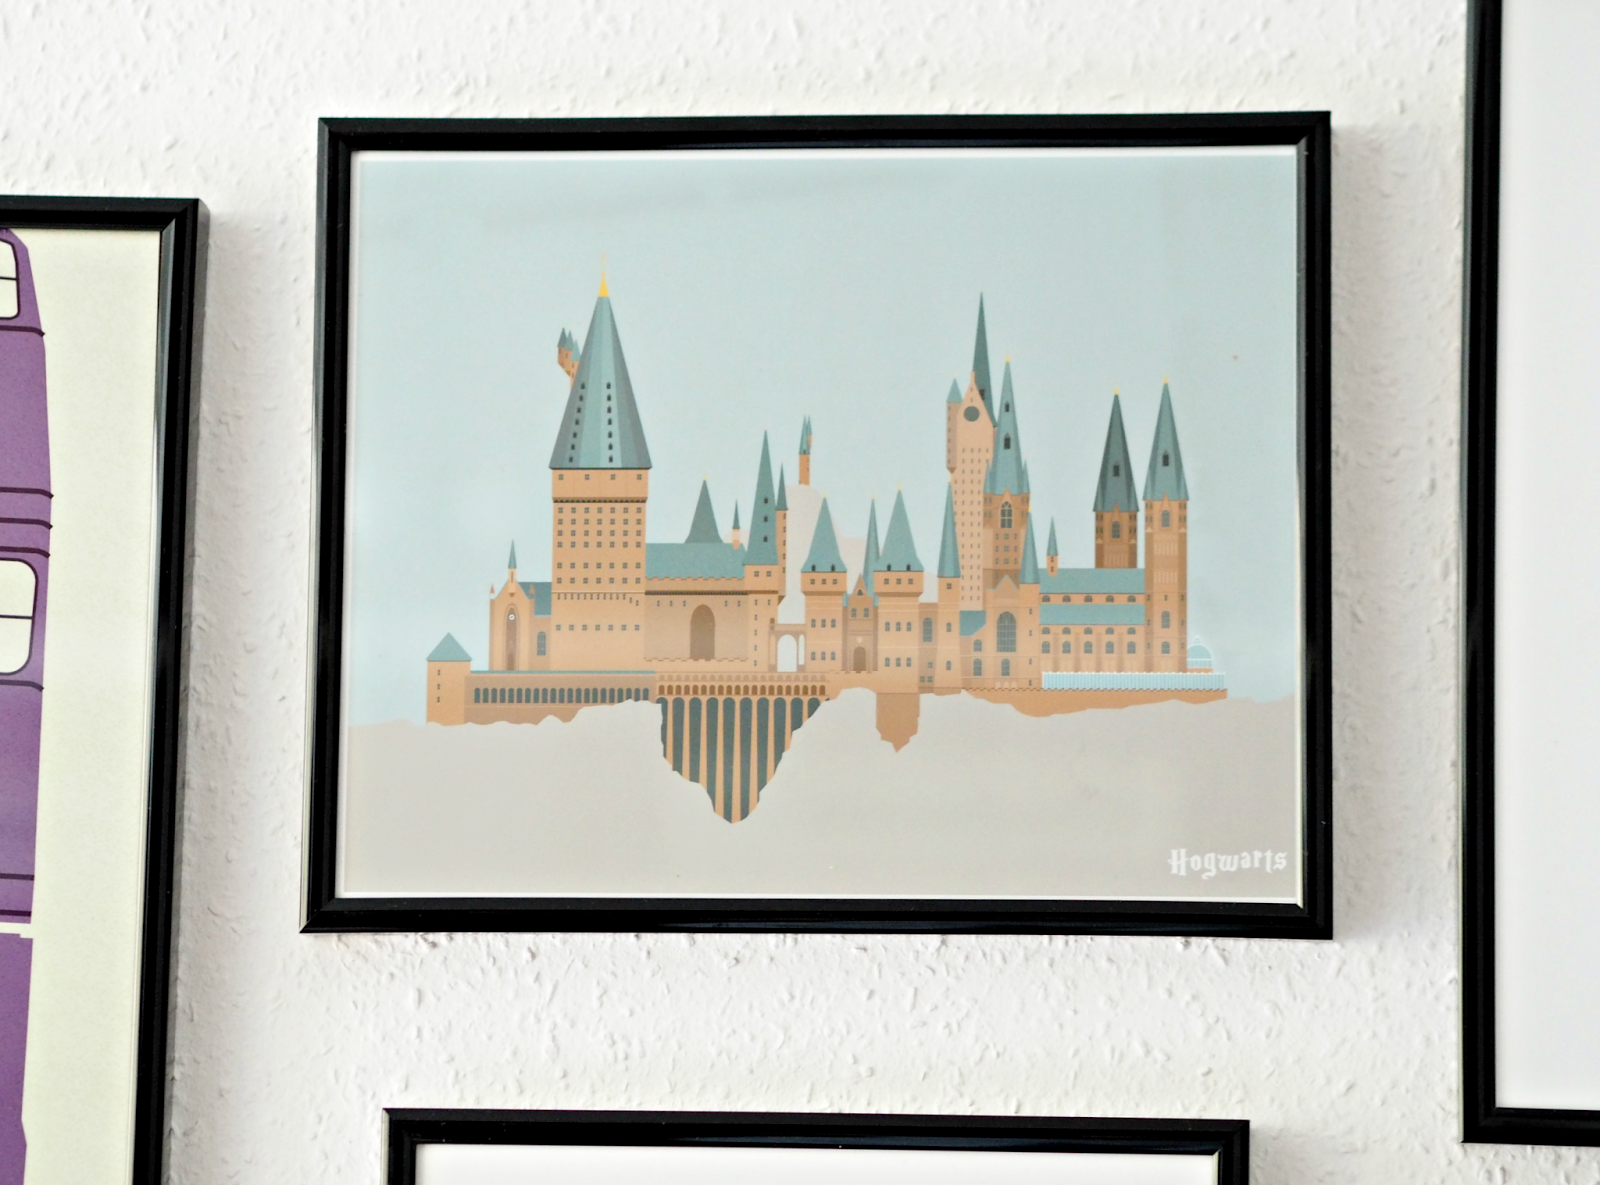 Beautiful So there you have it Have you spotted any other awesome Harry Potter artwork on Etsy that you think I should add to the wall Let me know